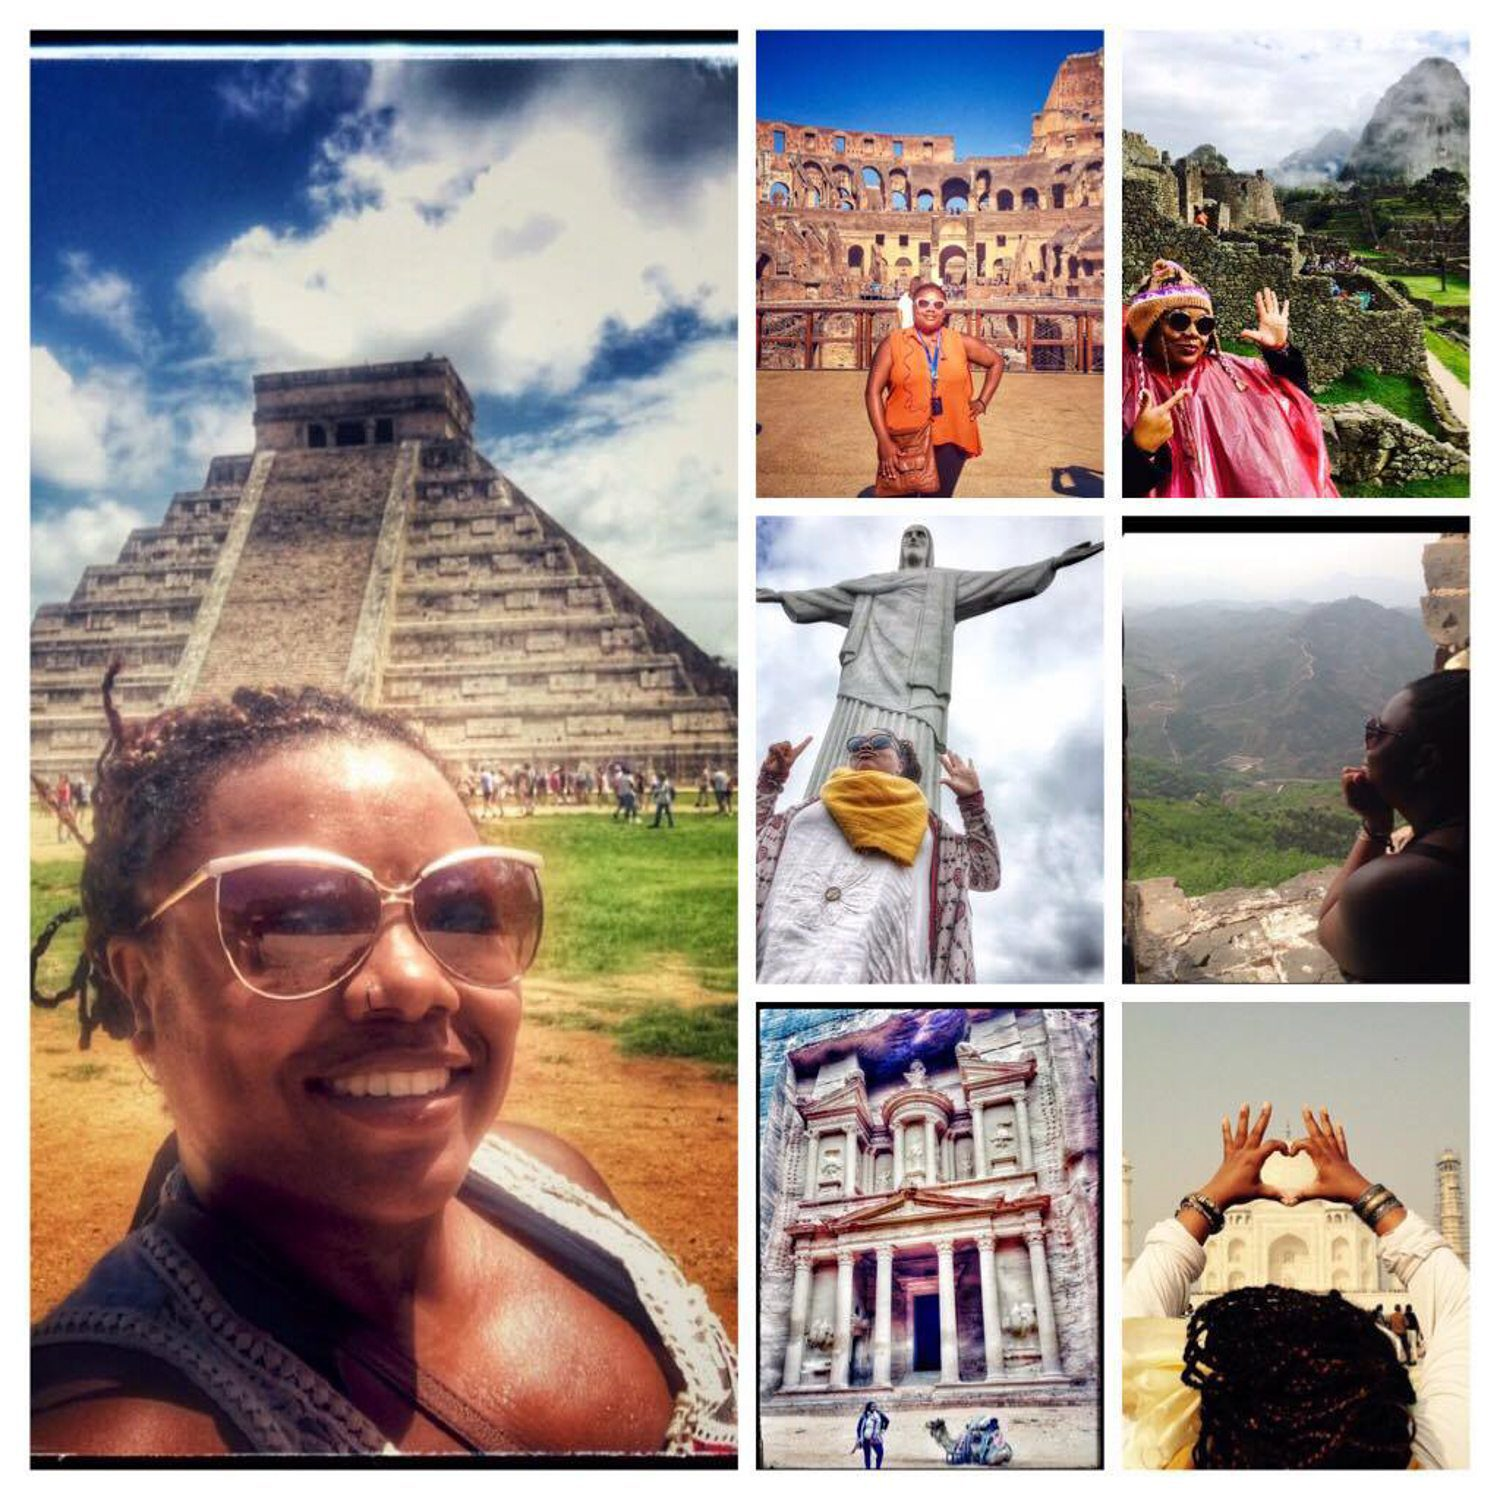 7 World Wonders in 1 year!